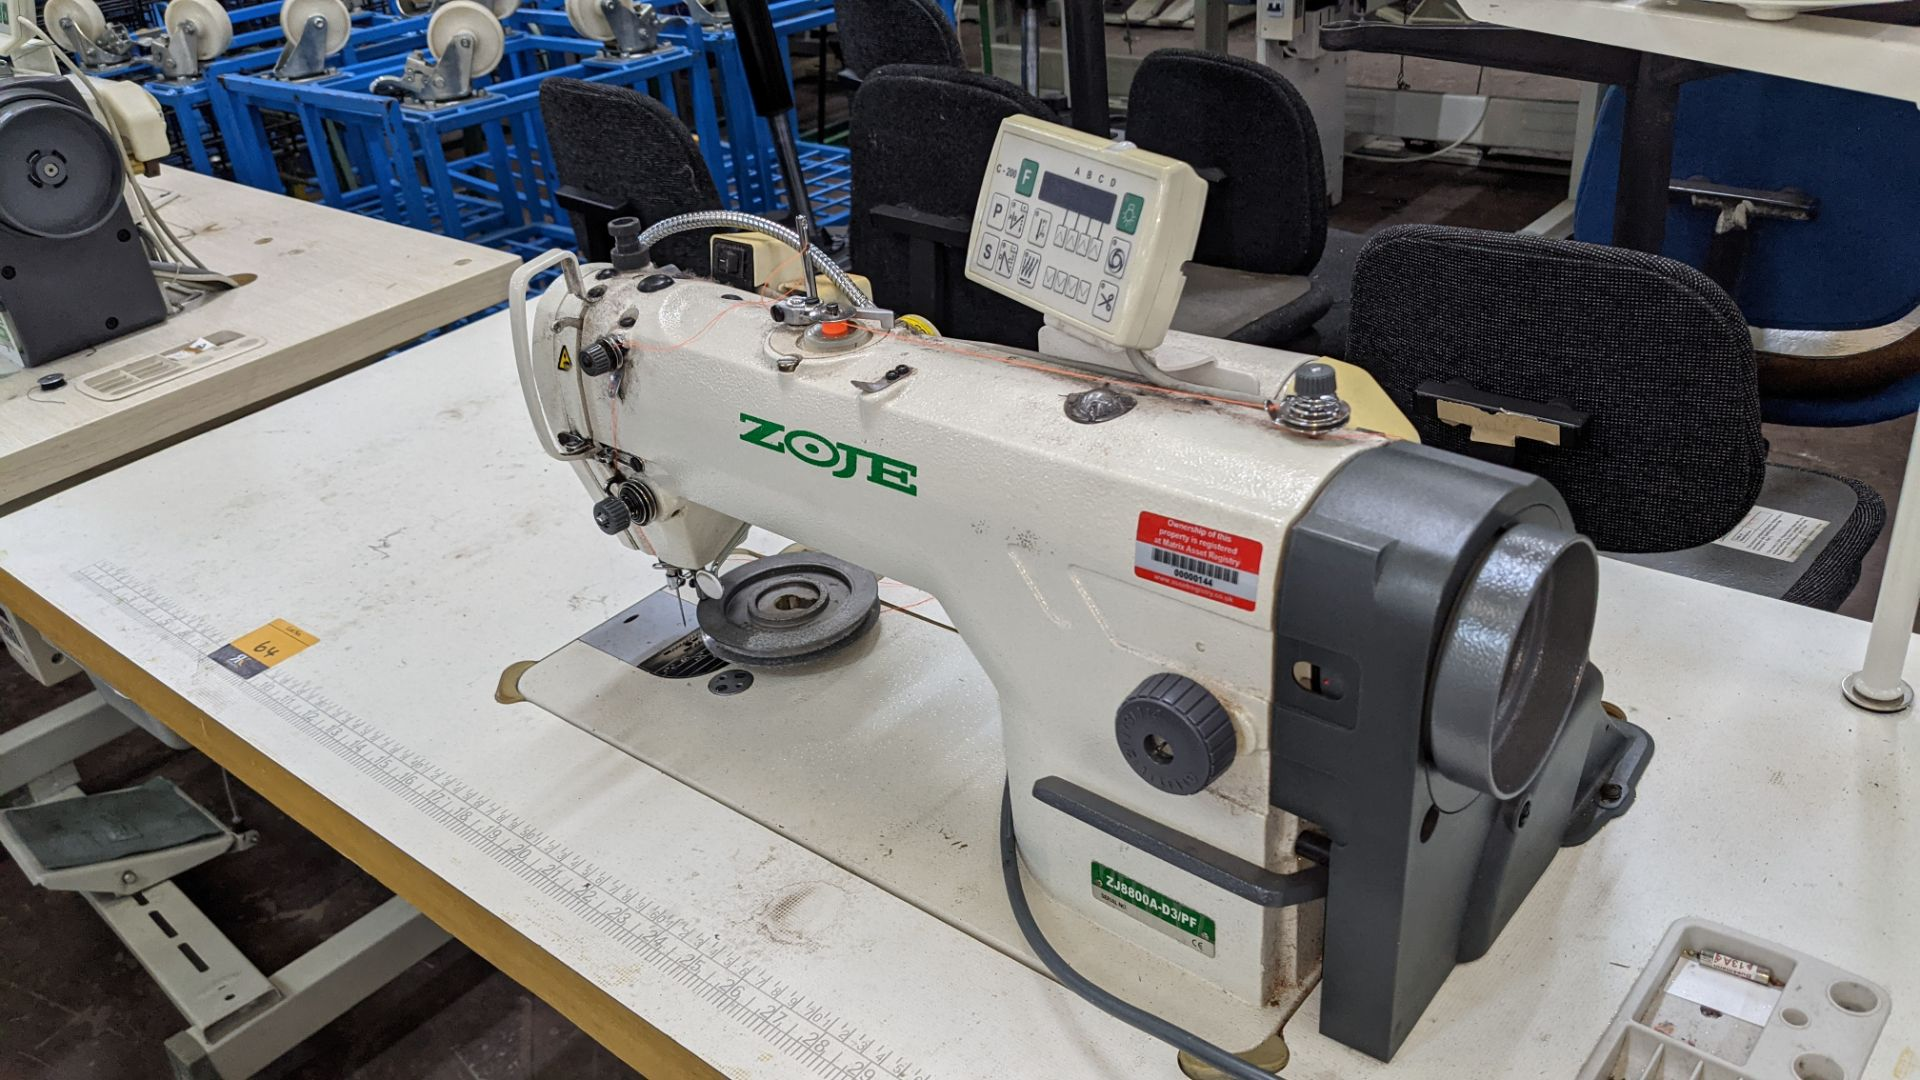 Zoje model ZJ8800A-D3B/PF sewing machine with C-200 controller - Image 4 of 16